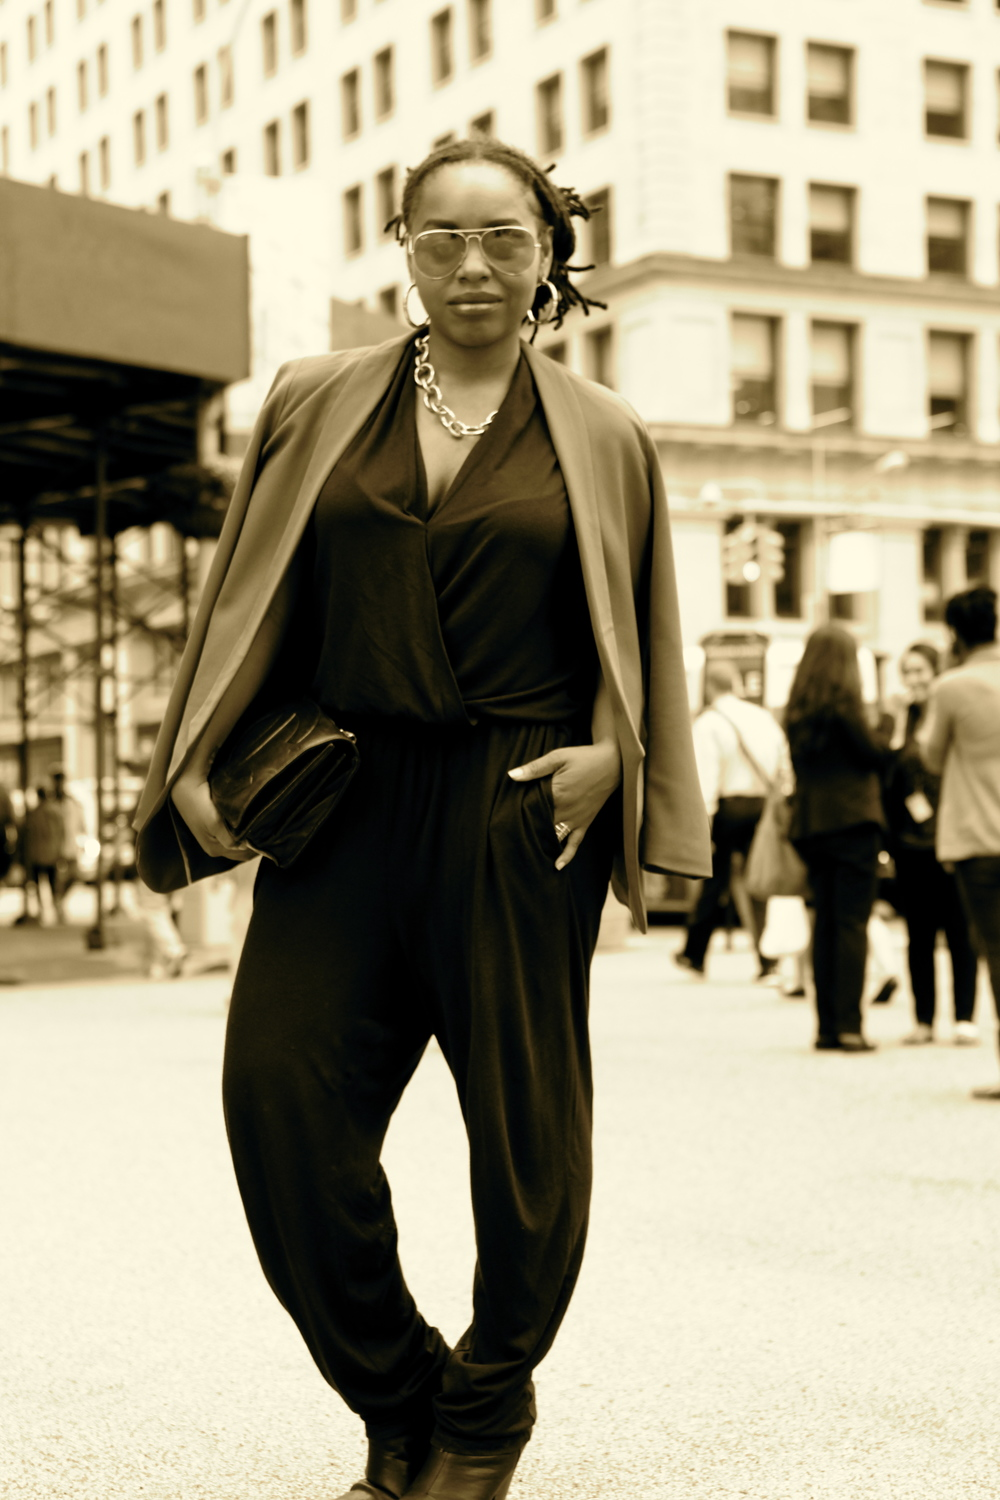 Jumpsuit: Marshalls,  Blazer: H&M, Necklace: Julie Vos, Ring: House Of Harlow,                                                             Sunglasses: Rayban, Bag: Chanel, Shoes: Rag & Bone